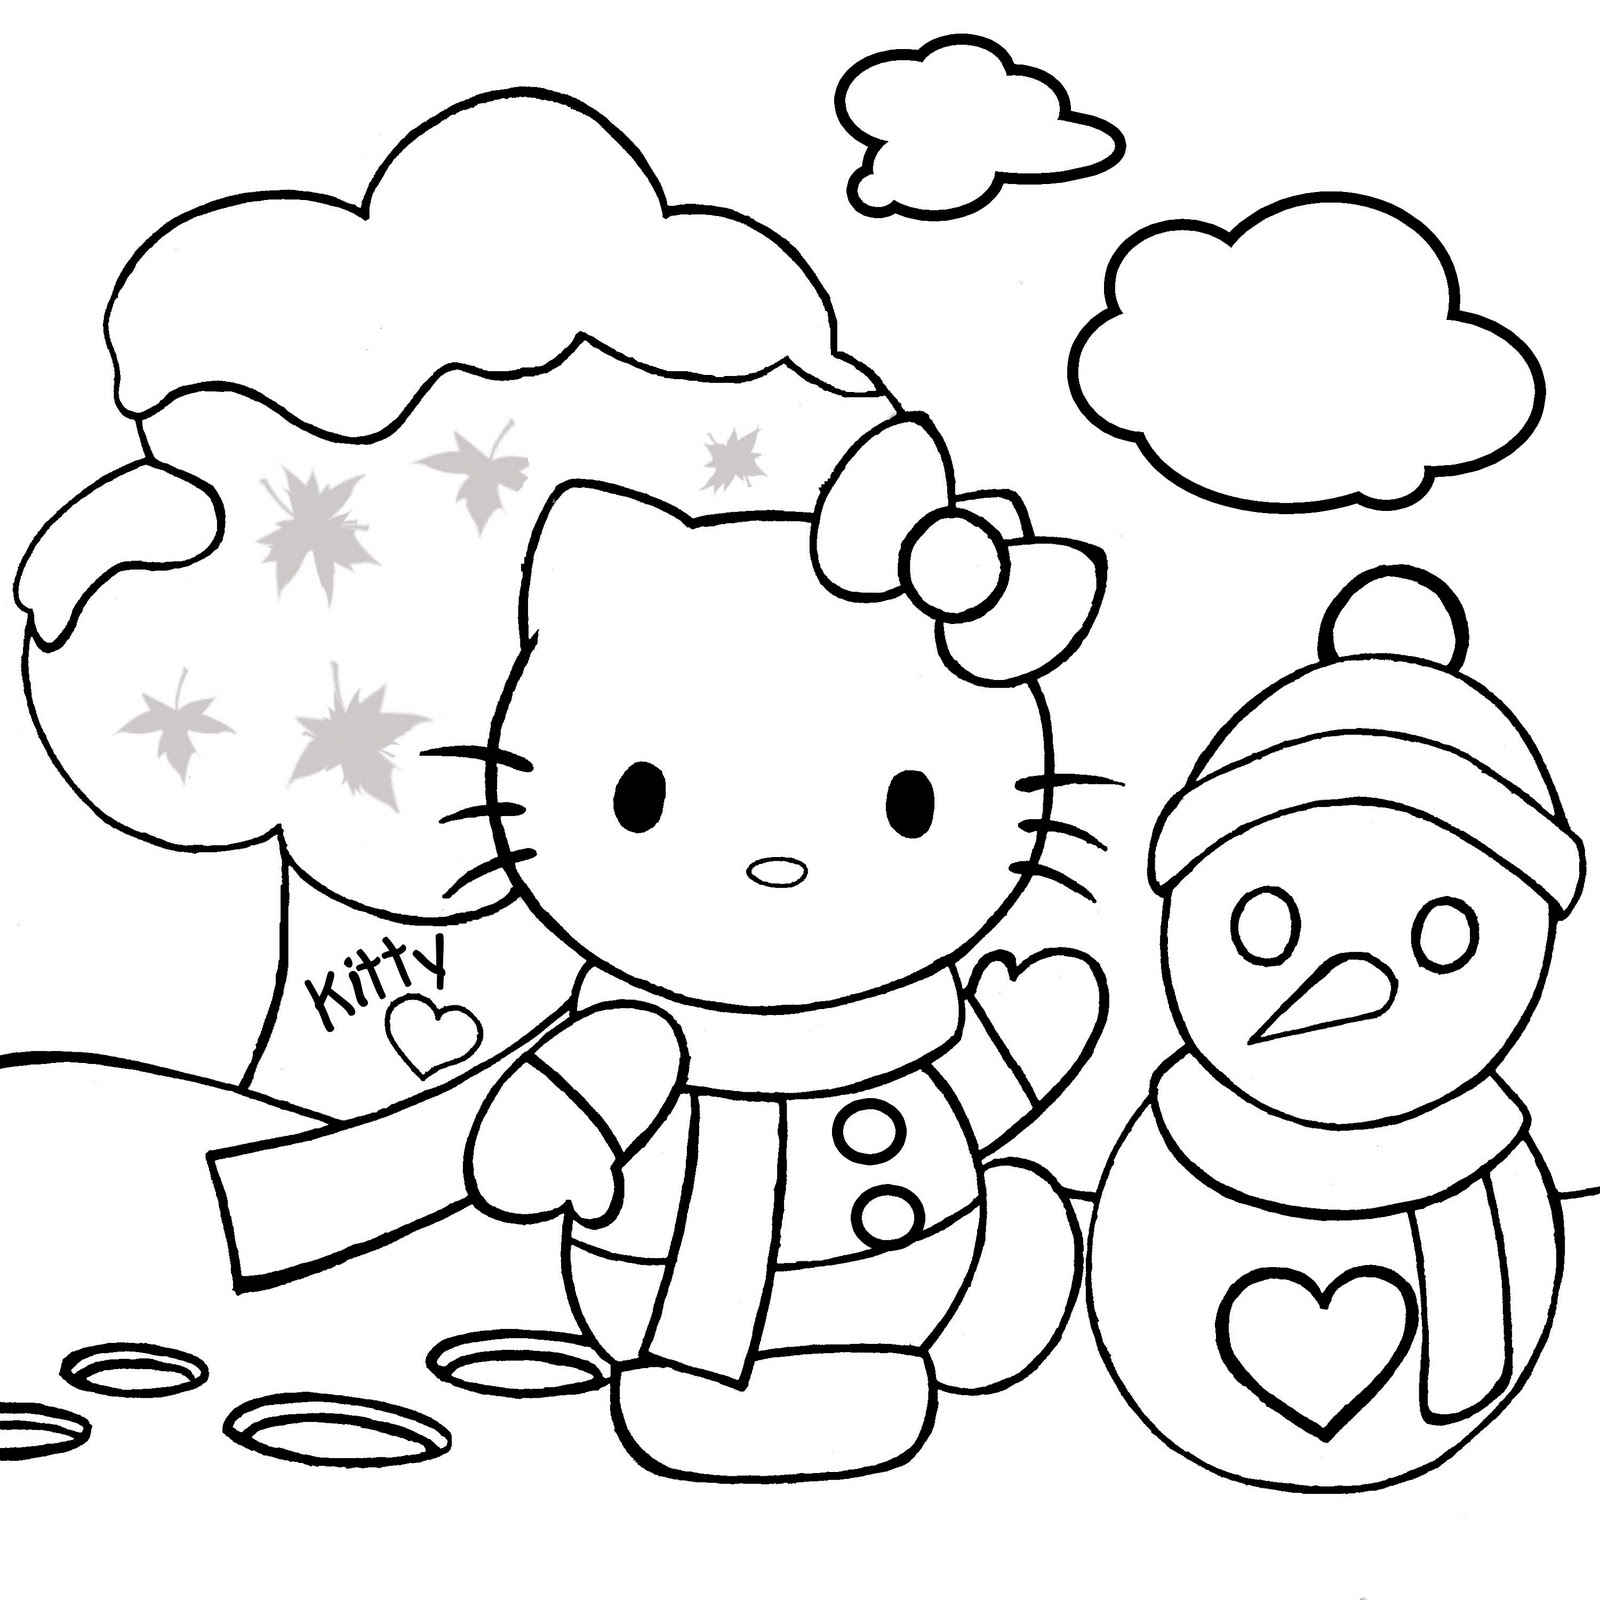 1600x1600 Christmas Colouring Pictures For Children